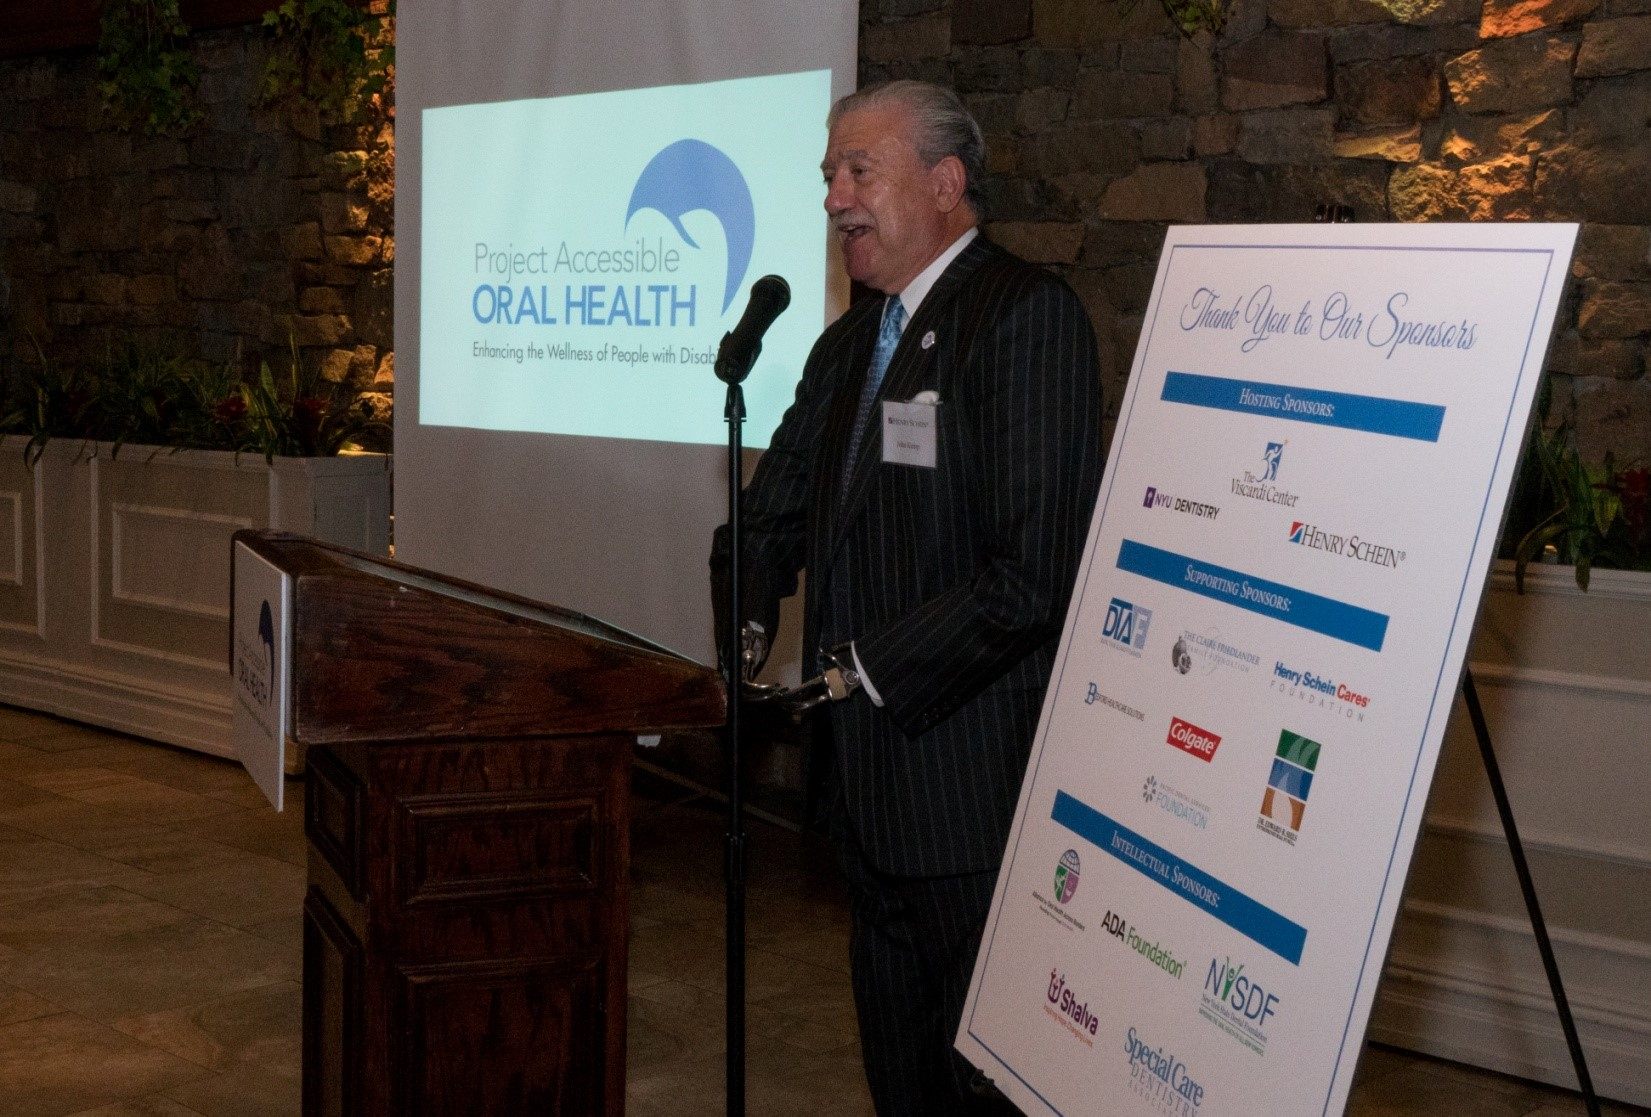 John D. Kemp, President & CEO, The Viscardi Center; Chairman, Project Accessible Oral Health, recapping Day 1 of the event at the thank you dinner.